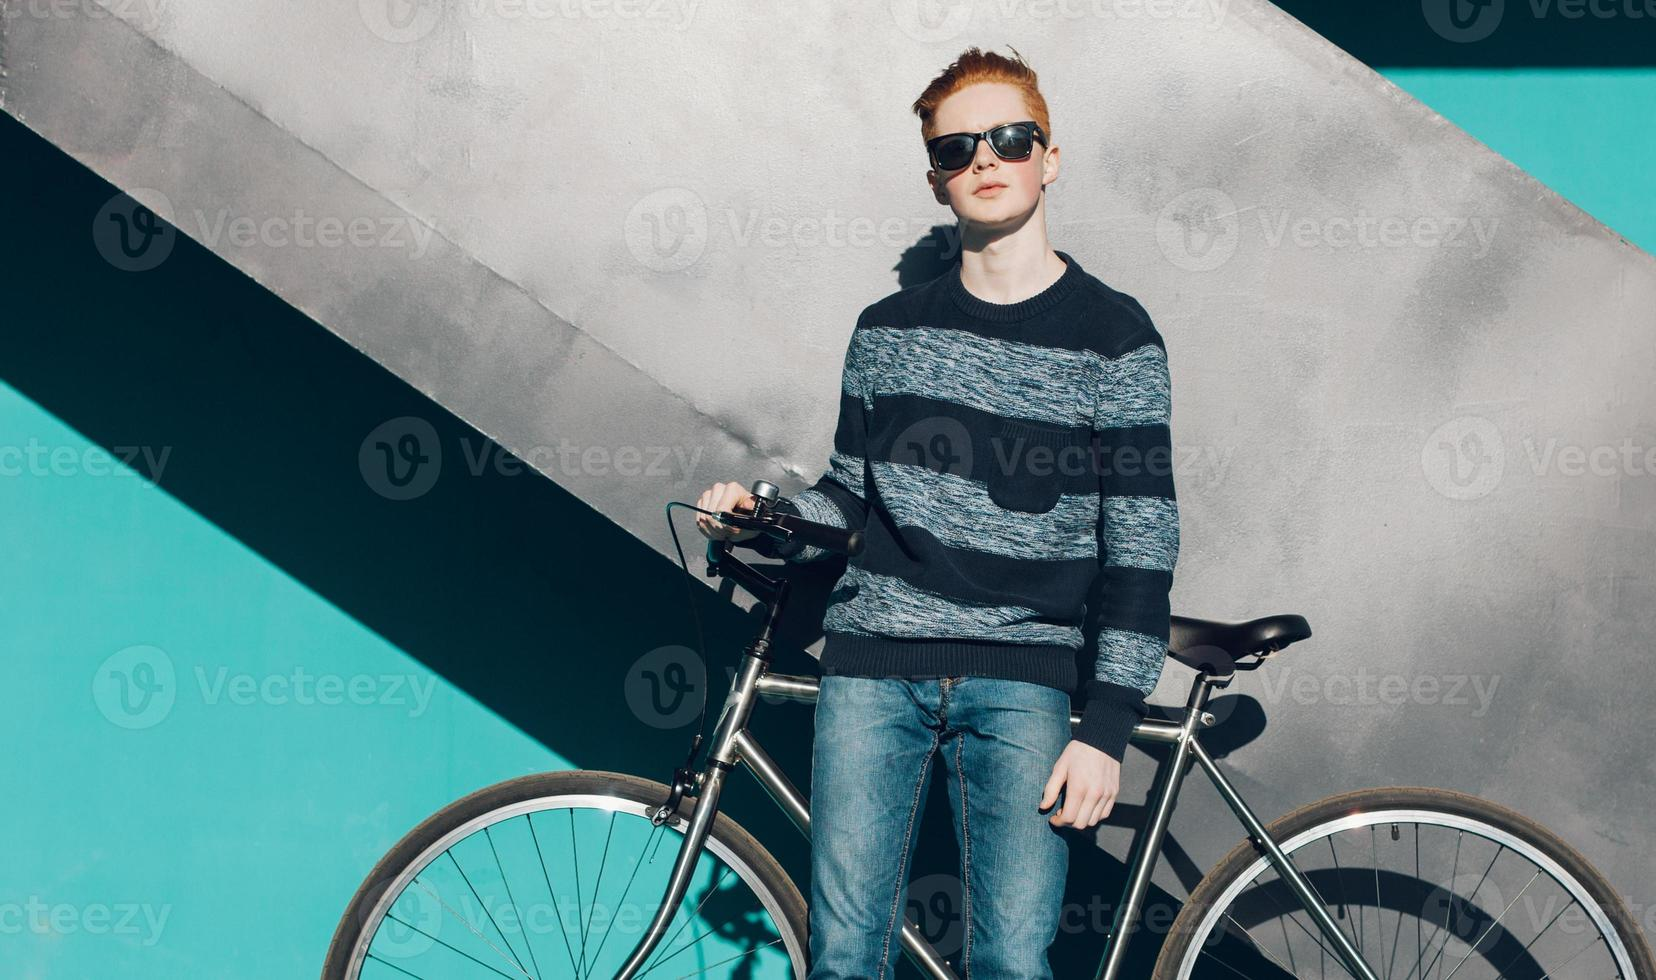 Young redhead man standing next to a vintage bicycle photo